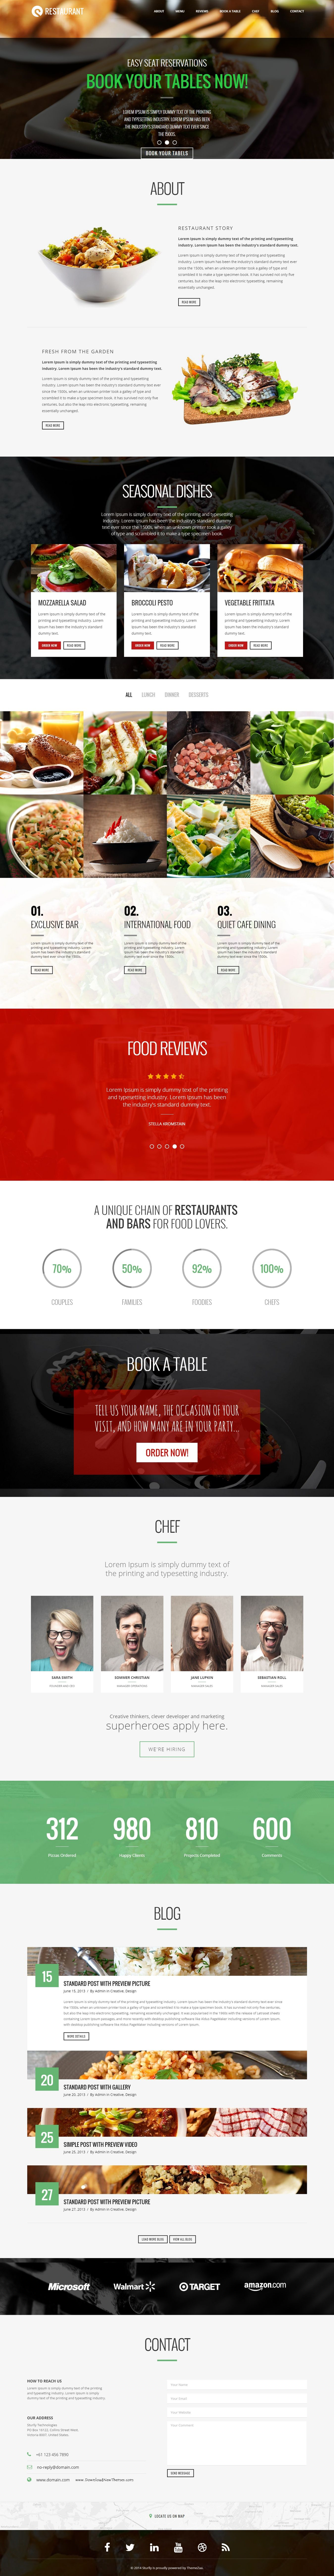 Restaurant One Page Bootstrap Template Cafe Bakery Free